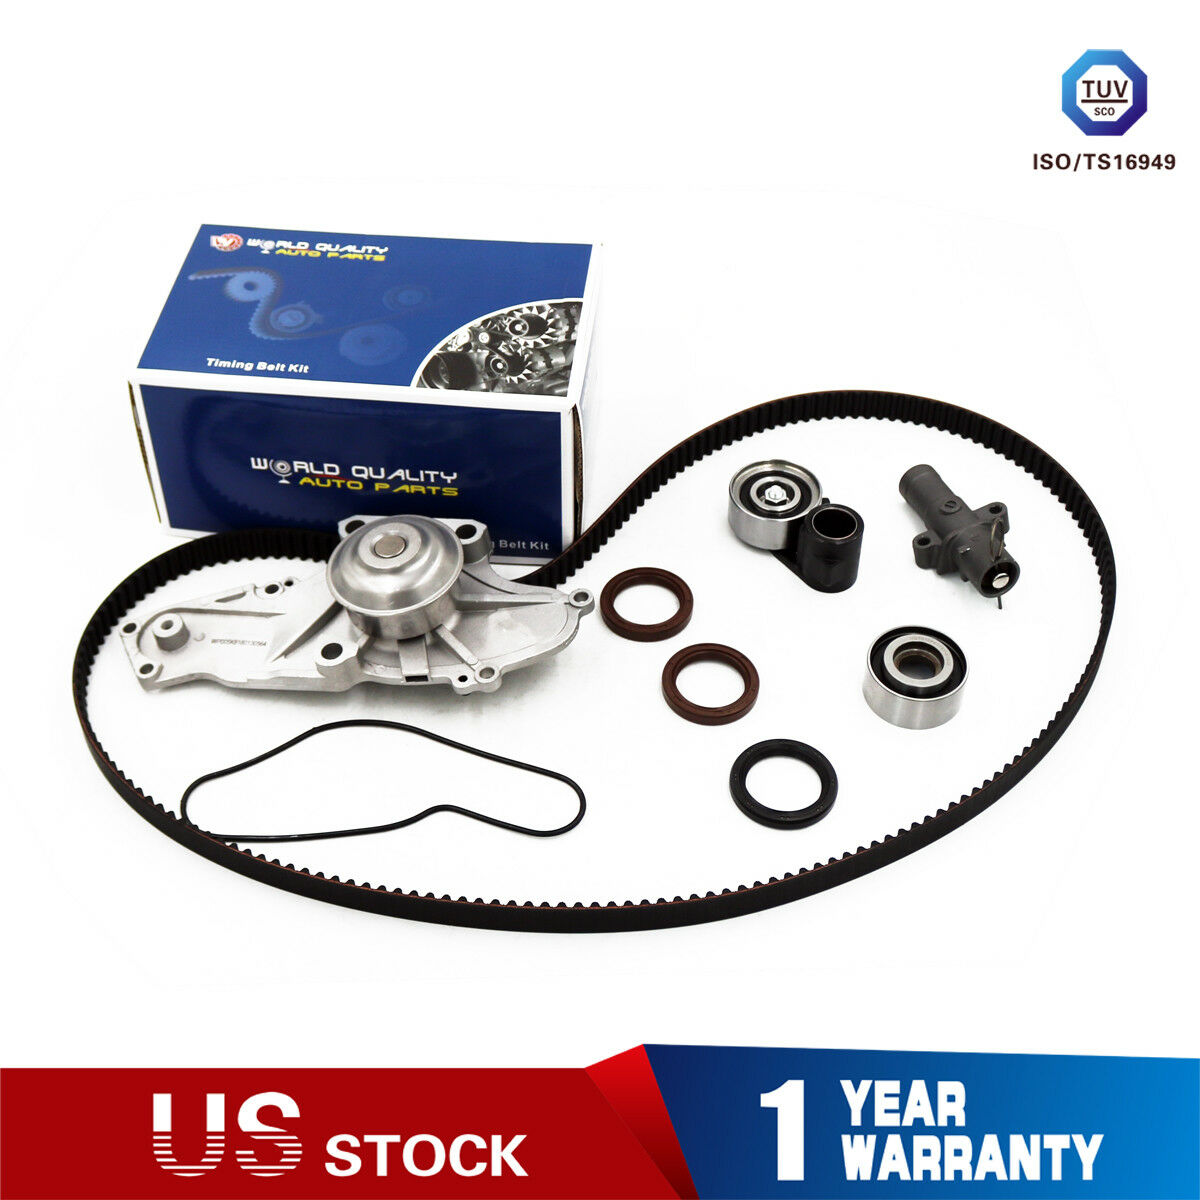 Timing Belt Kit Water Pump for 2003-2013 Acura MDX TL RL ZDX TSX RDX Honda Accord//Odyssey//Pilot//Ridgeline Saturn Vue 3.0L 3.5L 3.7L SOHC V6